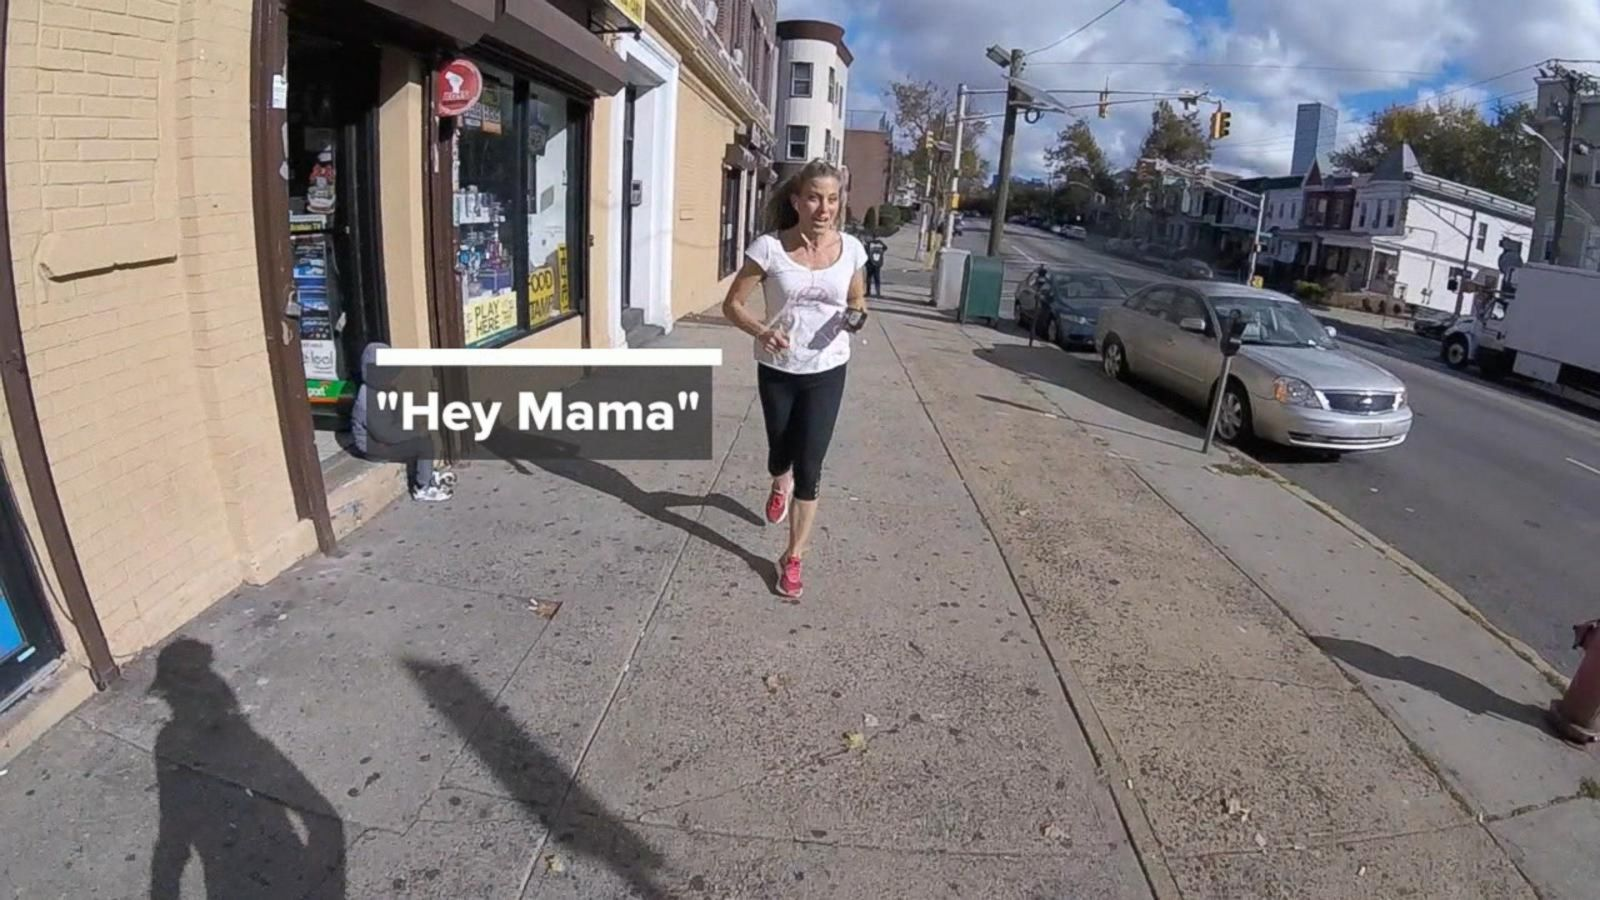 VIDEO: A Look at the Harassment Women Face While Going for a Run